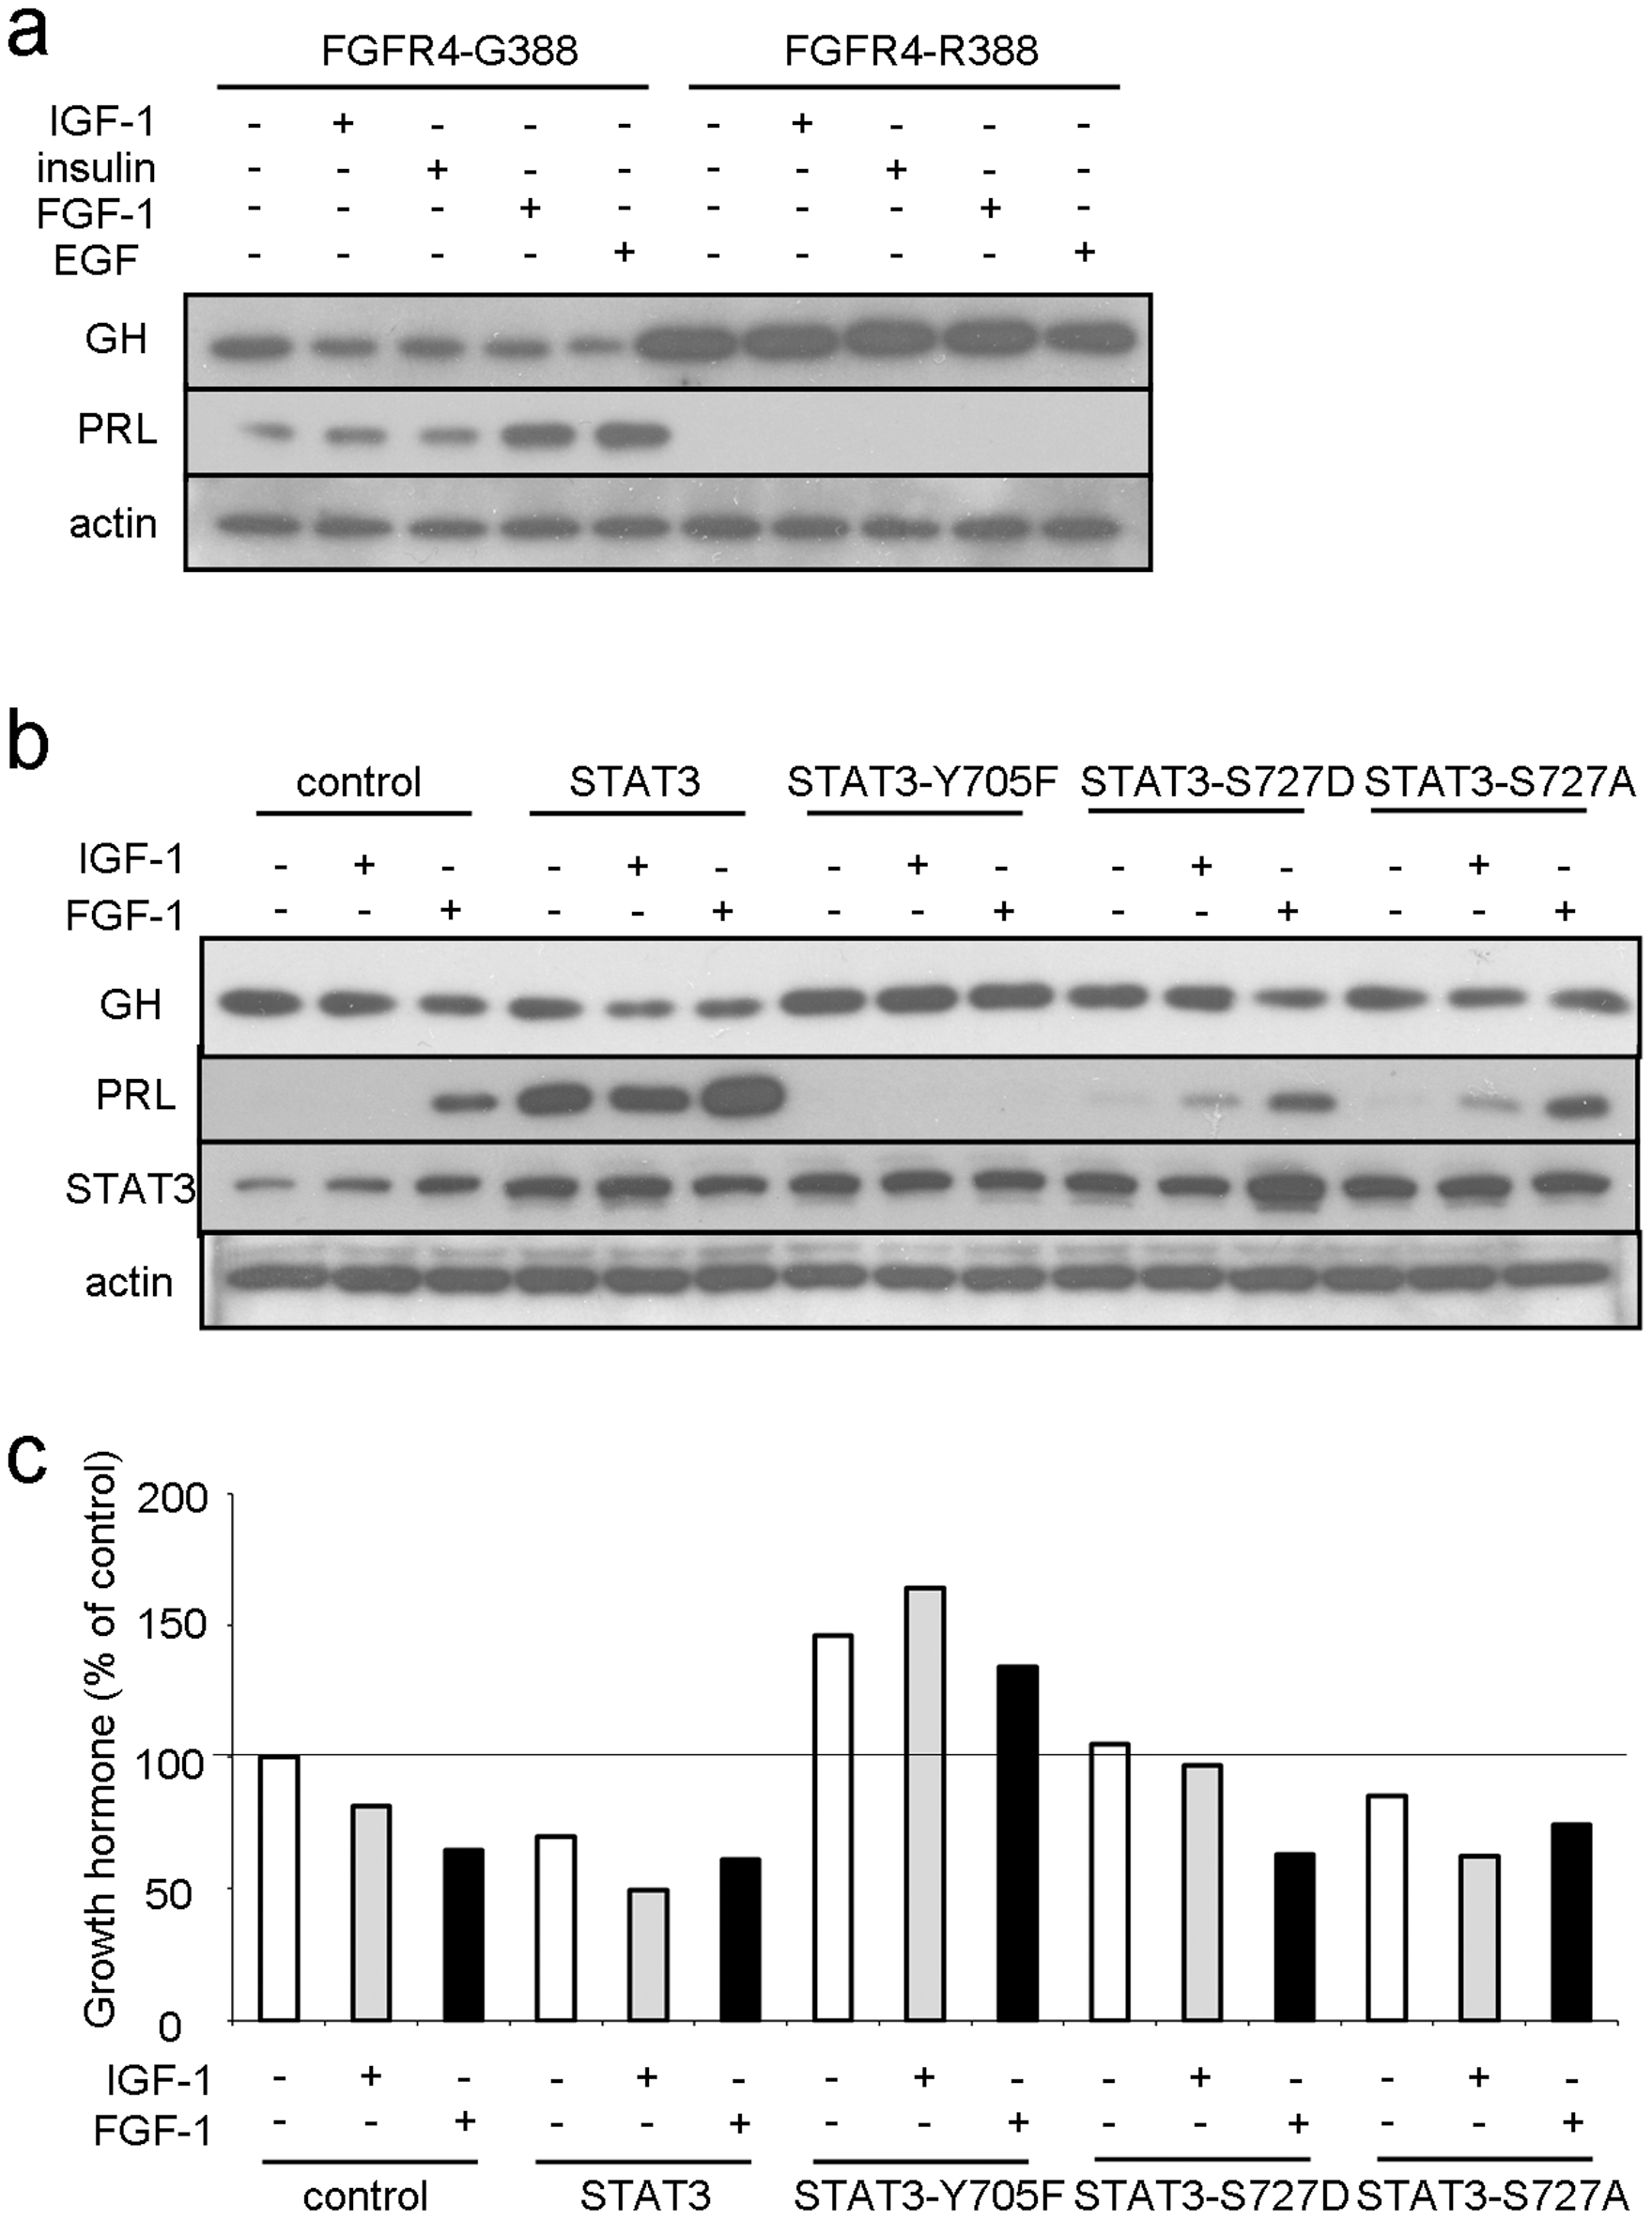 FGFR4-G388, but not FGFR4-R388, signals through pY-STAT3 to regulate pituitary hormone gene expression.